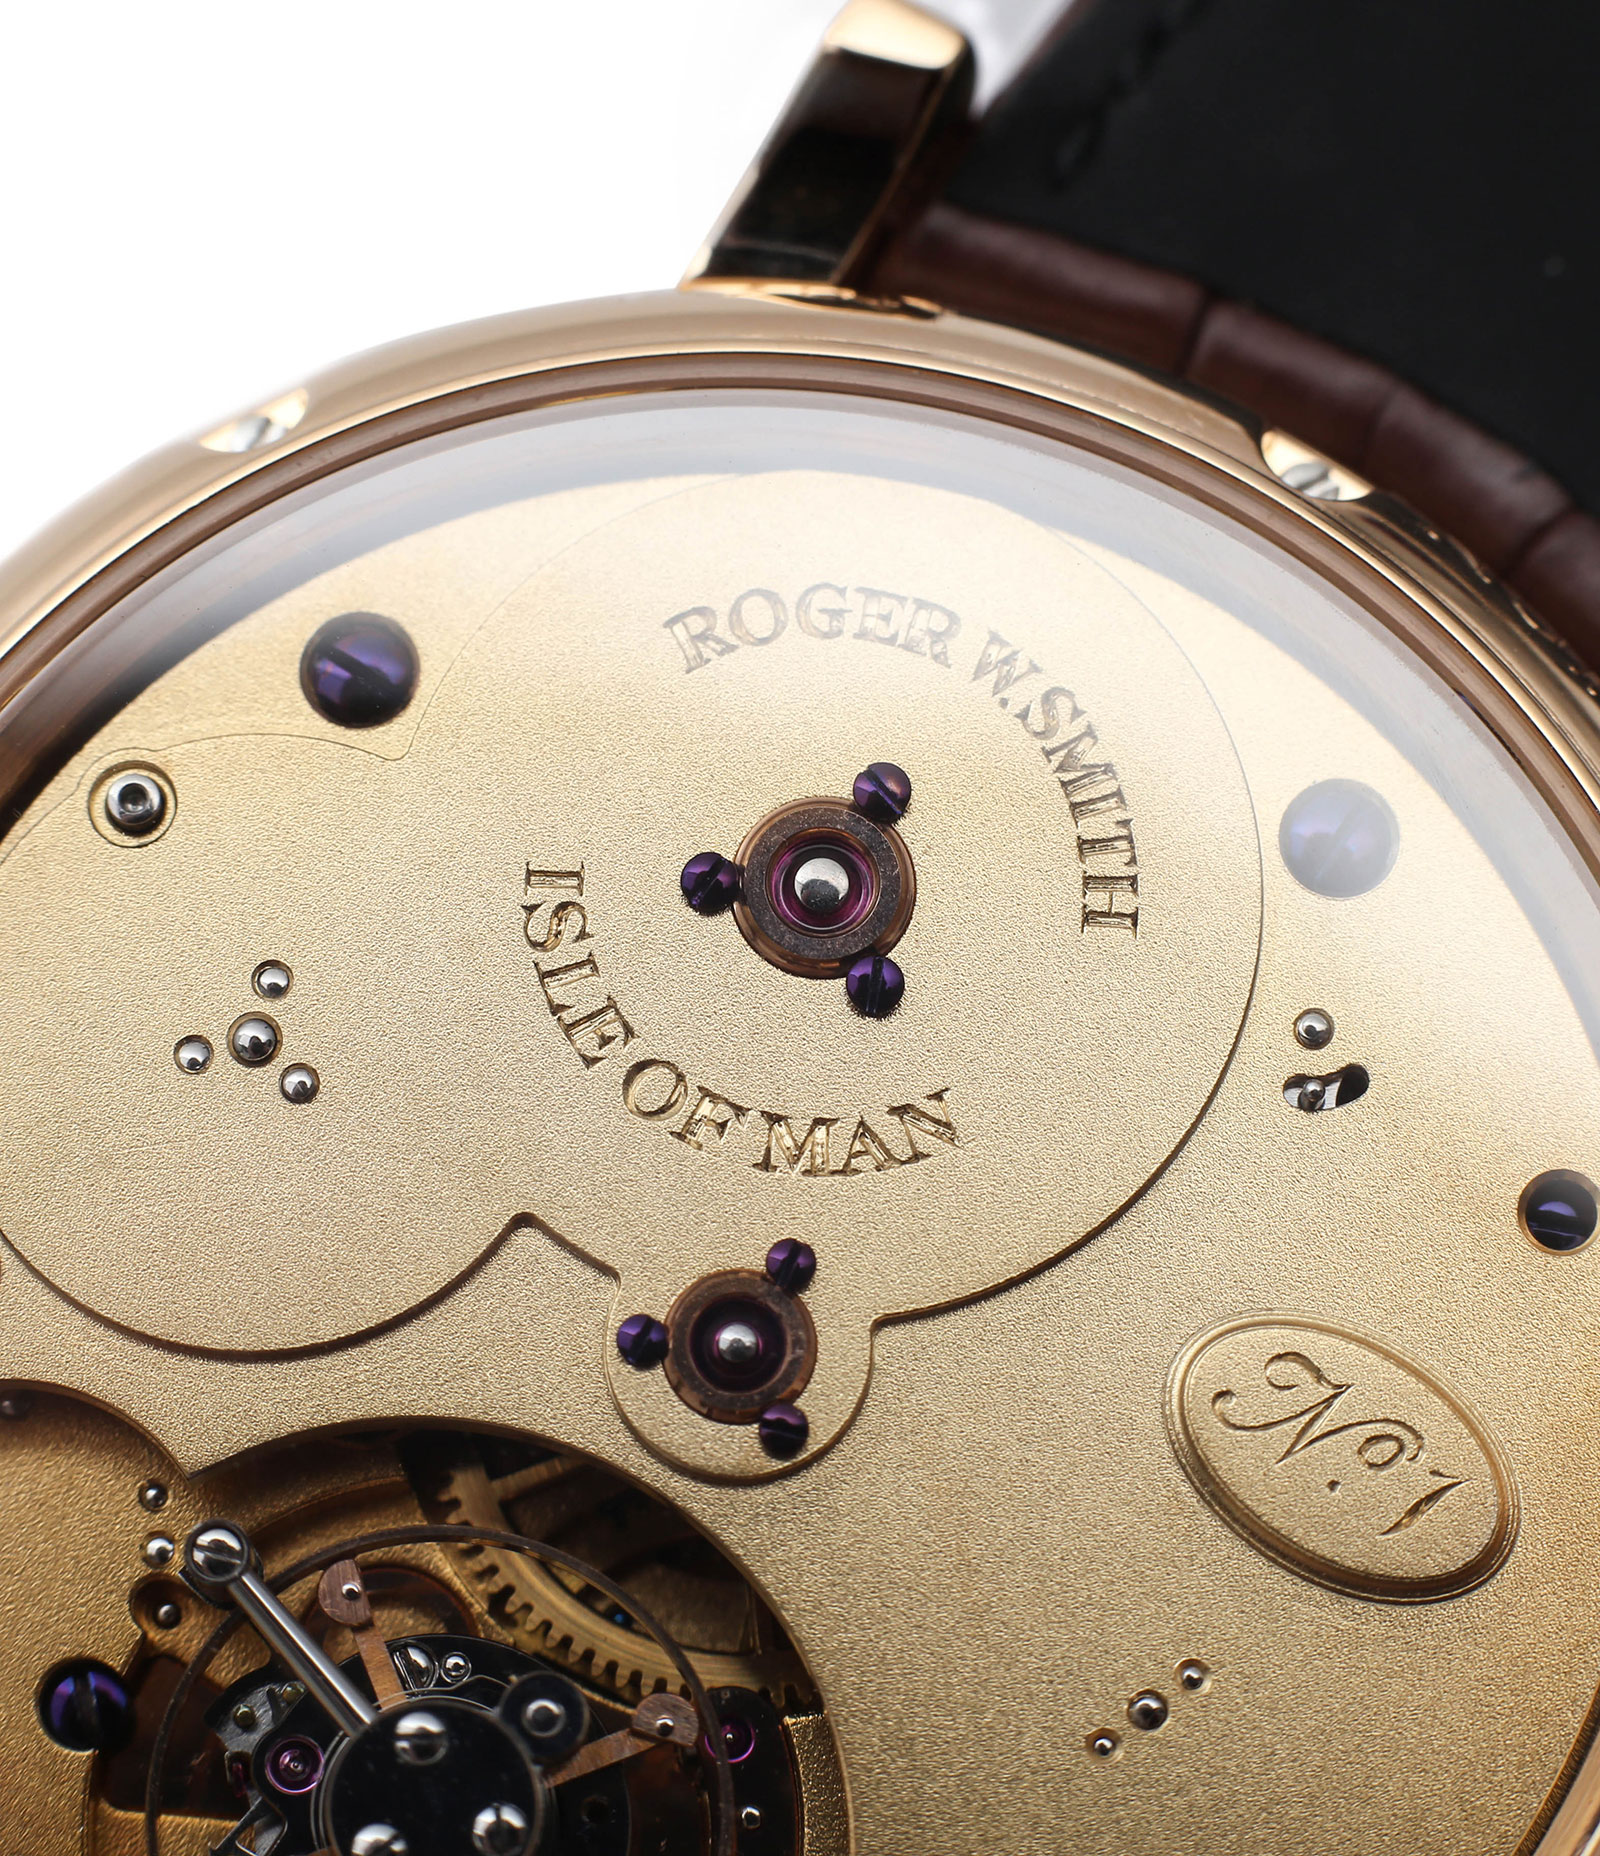 Roger Smith Tourbillon no.1-4